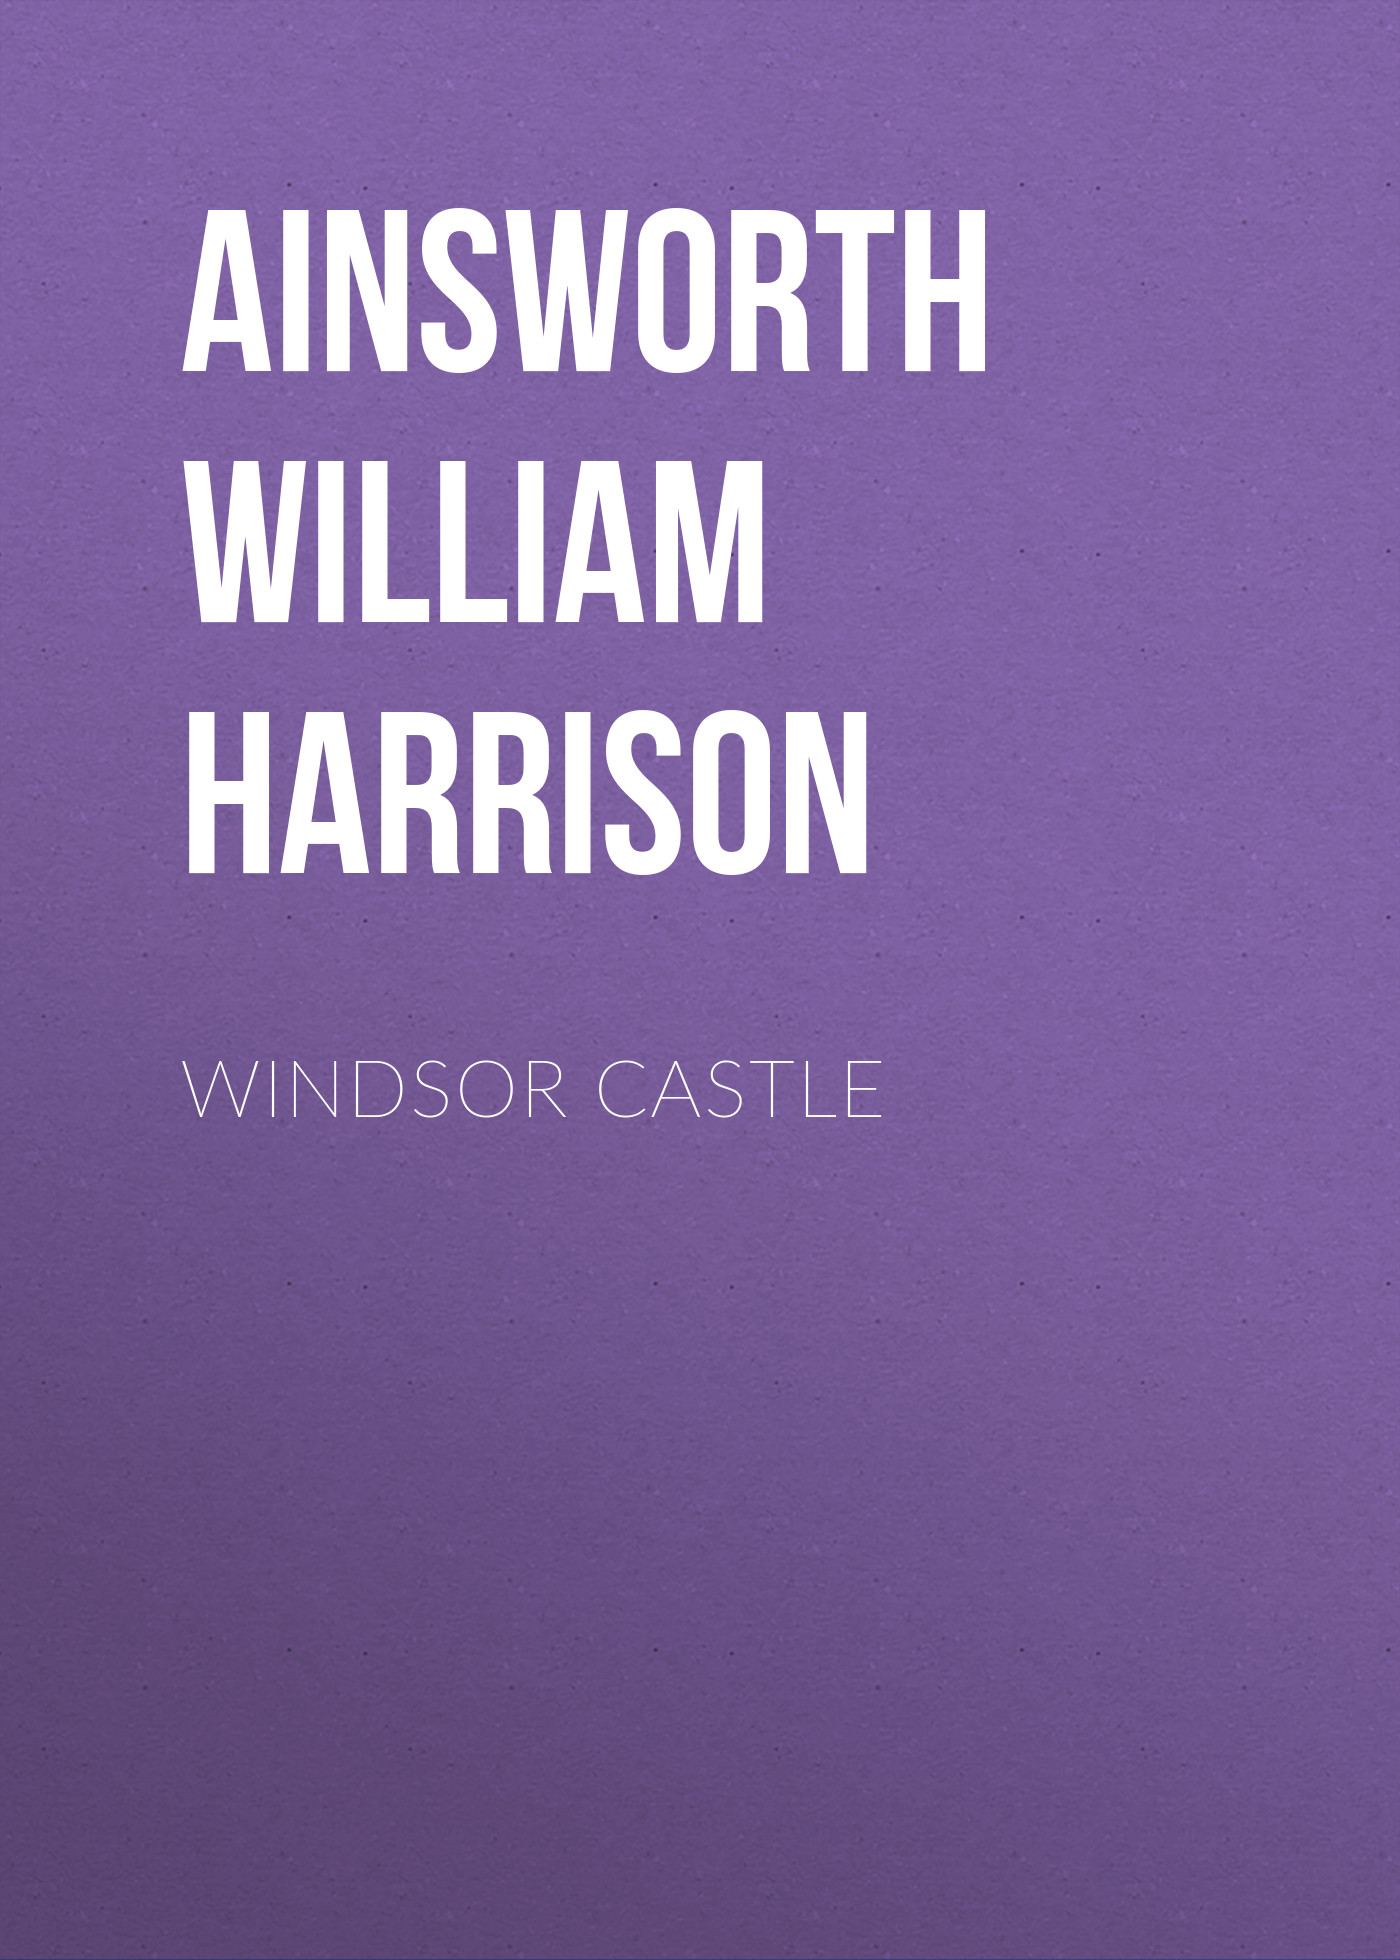 Ainsworth William Harrison Windsor Castle ainsworth william harrison windsor castle